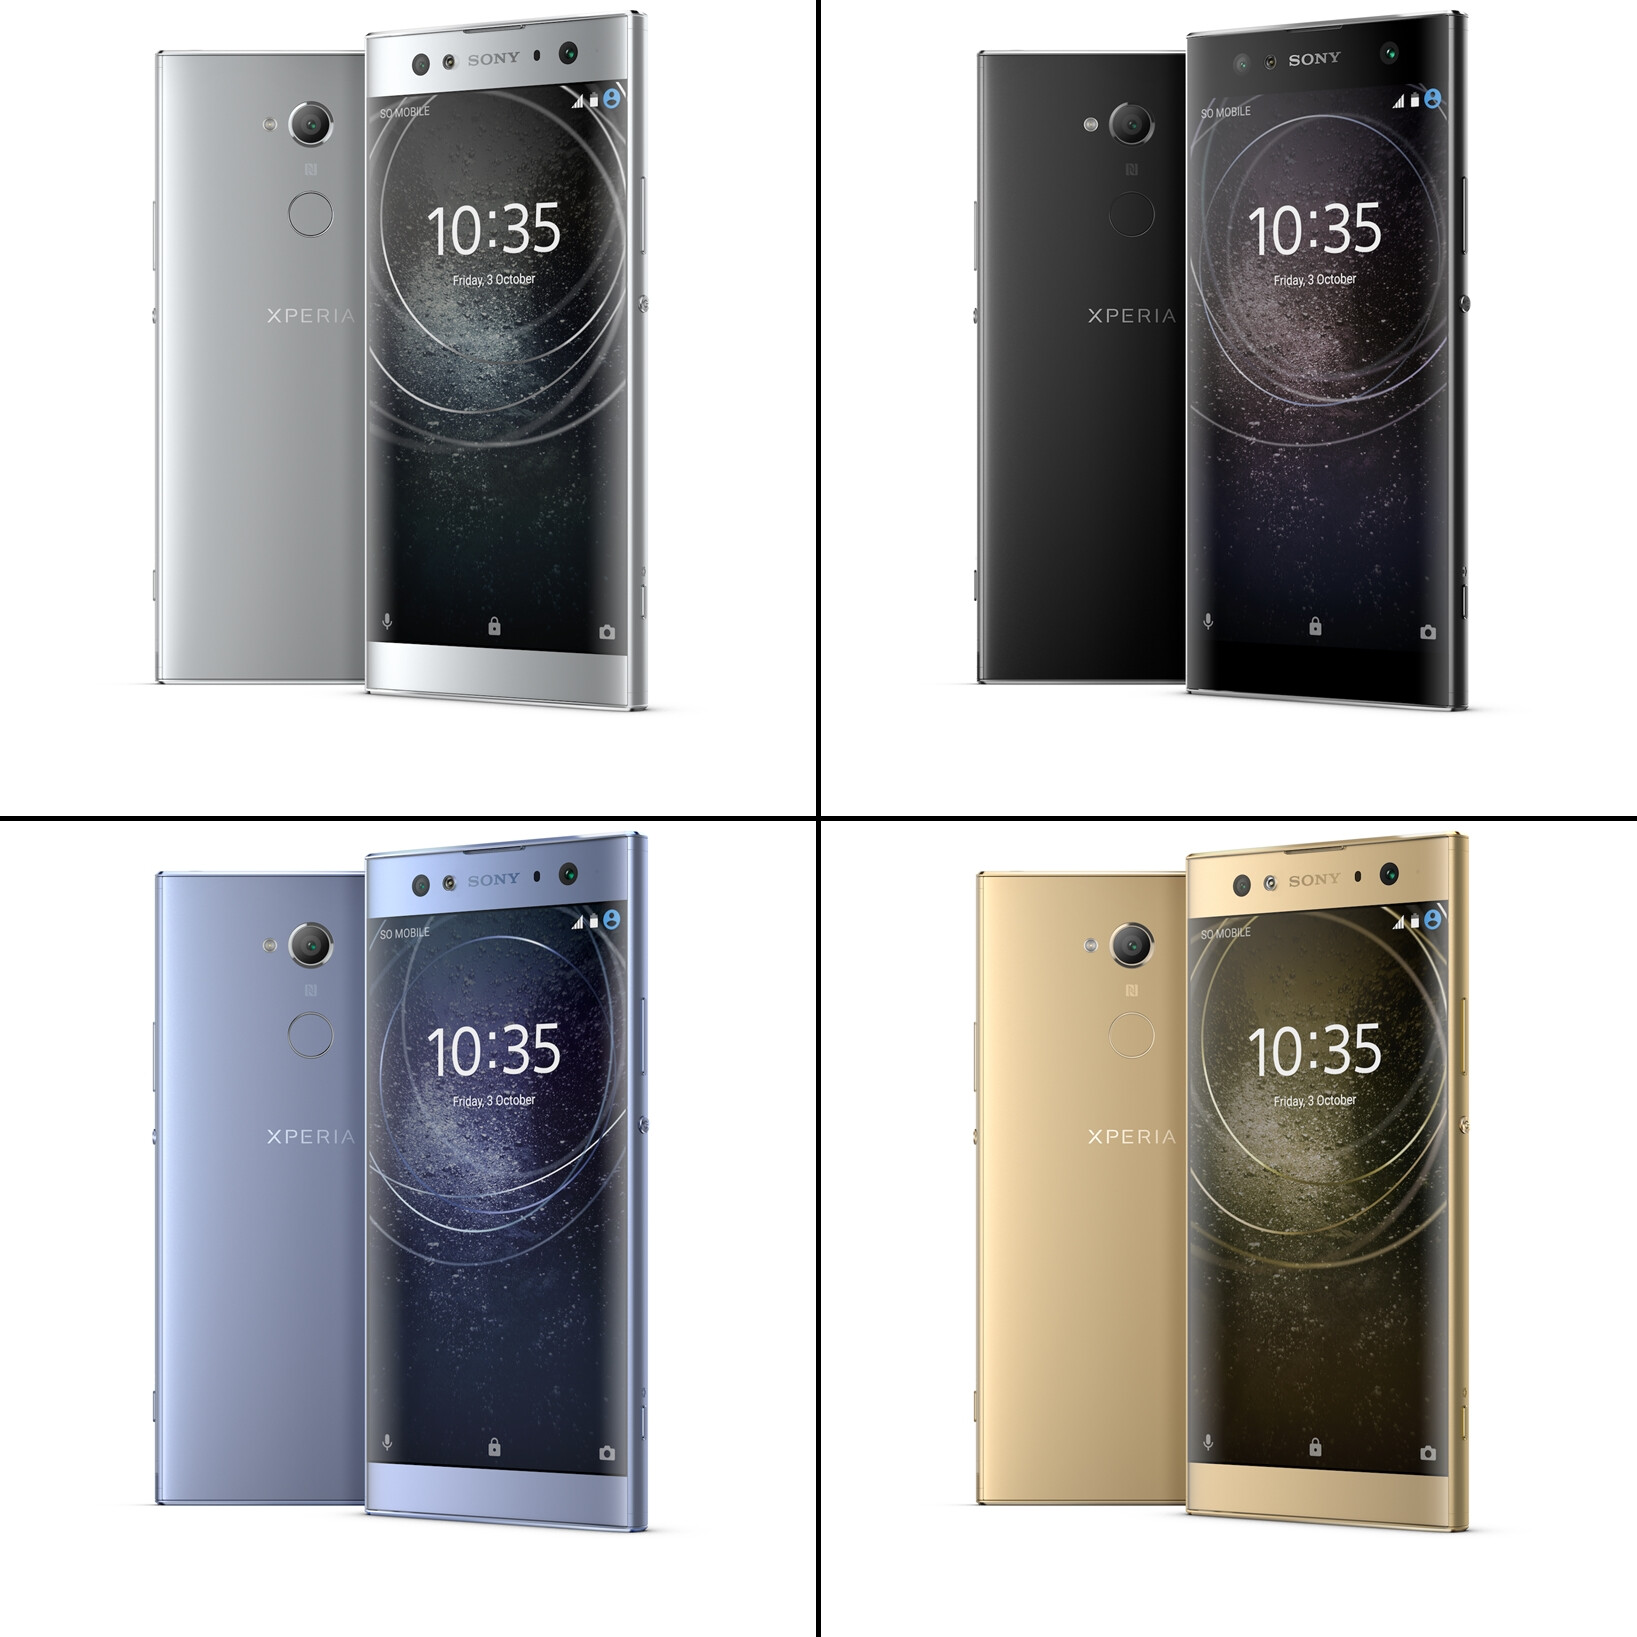 Traditions matter: Sony announces the Xperia XA2 and ...